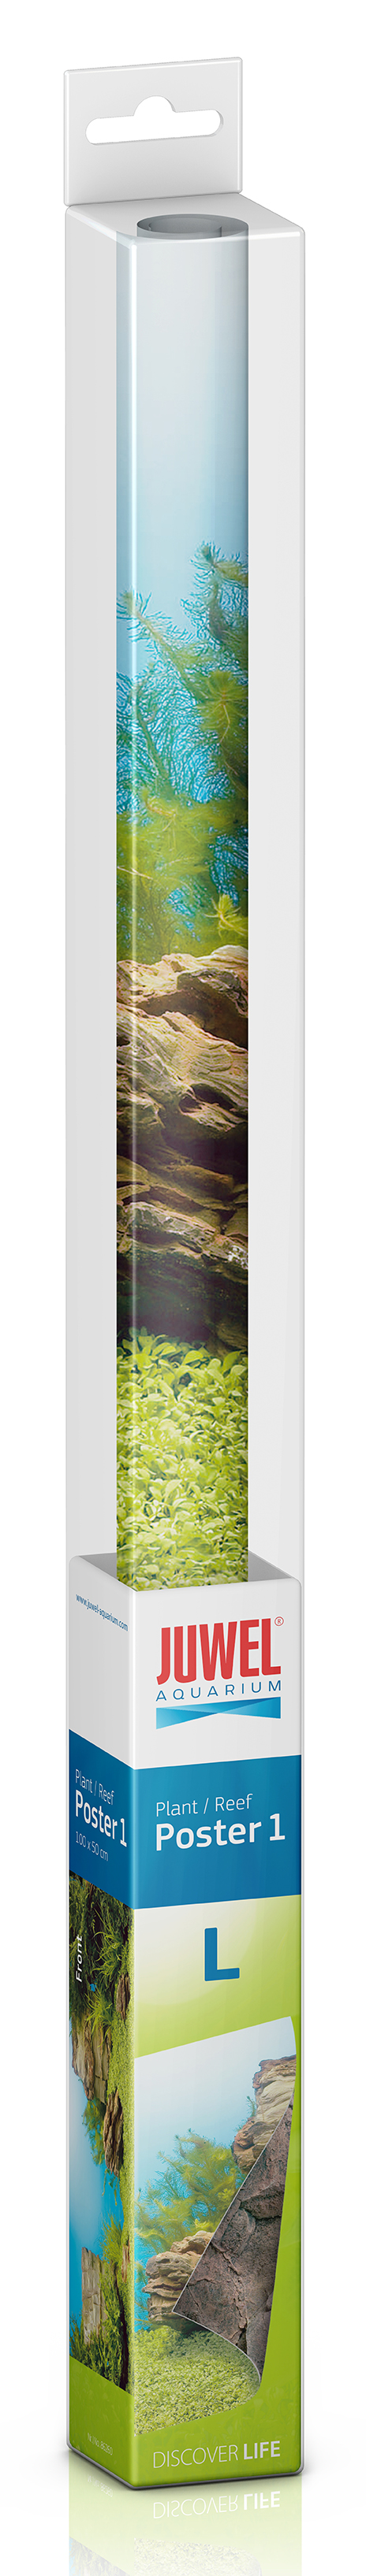 Juwel aquarium double poster 1 small large extra for Double fish tank